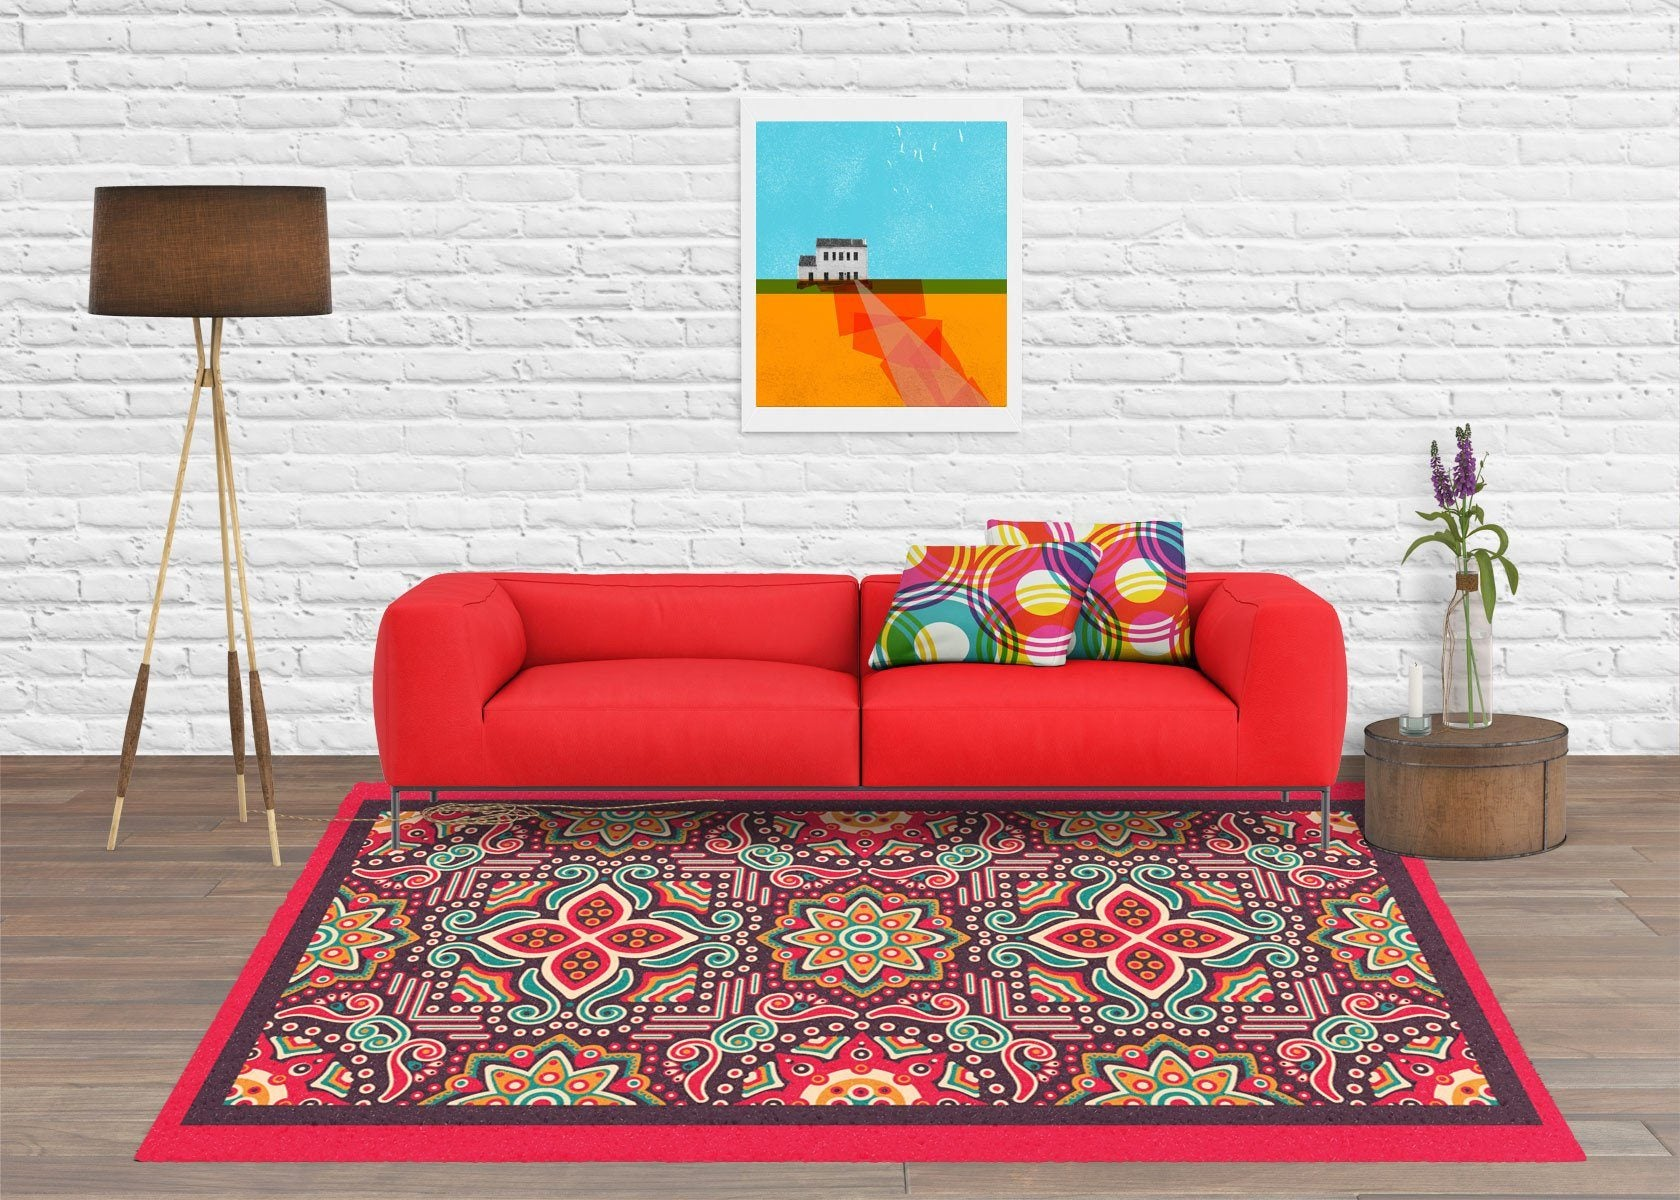 rugs mexican inspiration nice blankets design rug marvelous ideas and plain decoration galeriaquetzalcom wondrous